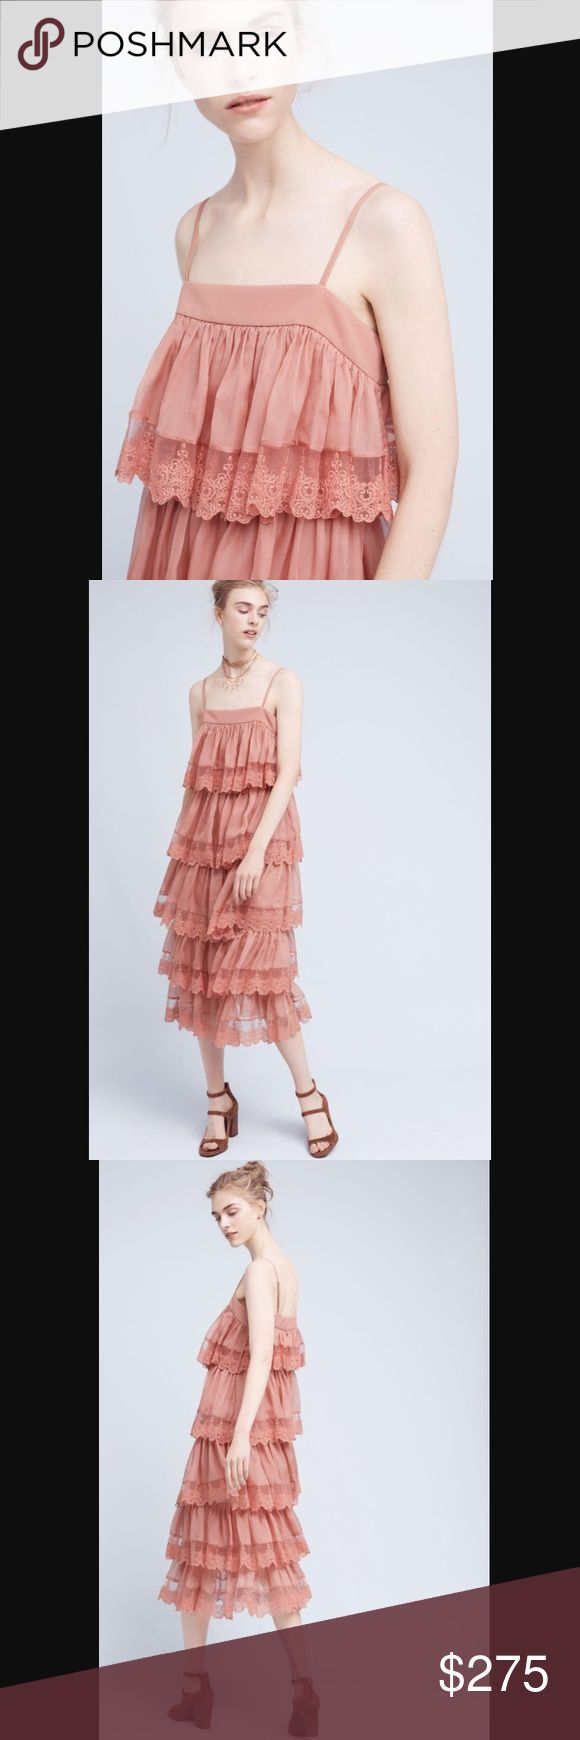 Anthropologie Three Floor tiered blush dress NWT. Size 2. So beautiful and romantic. Anthropologie Dresses Midi